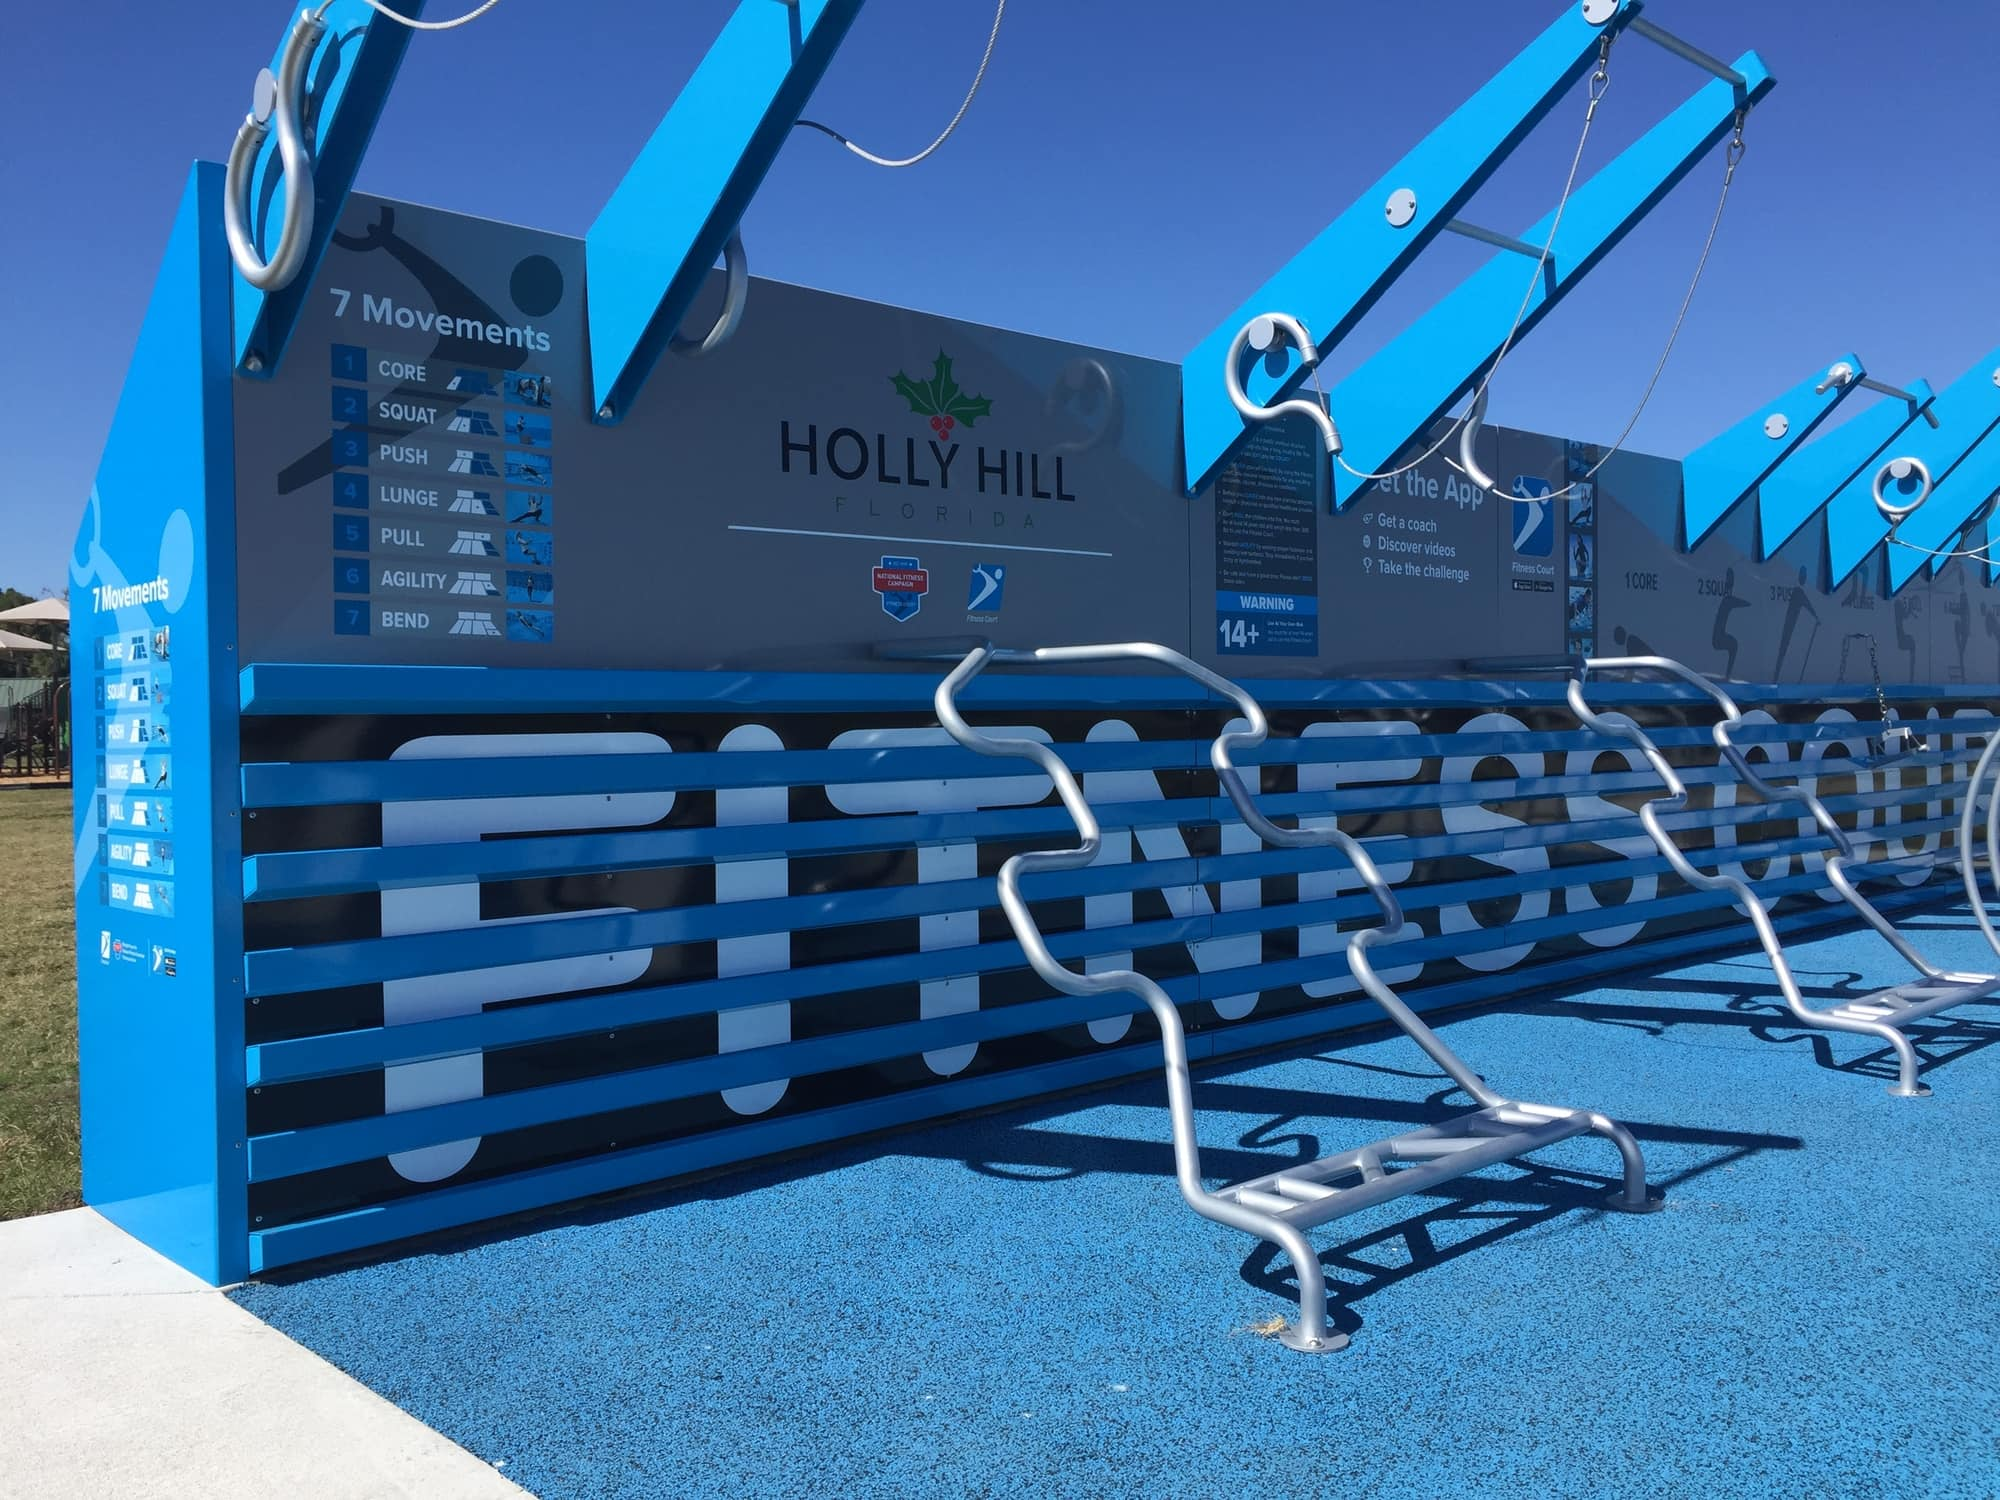 close up image of blue outdoor fitness center with equipment